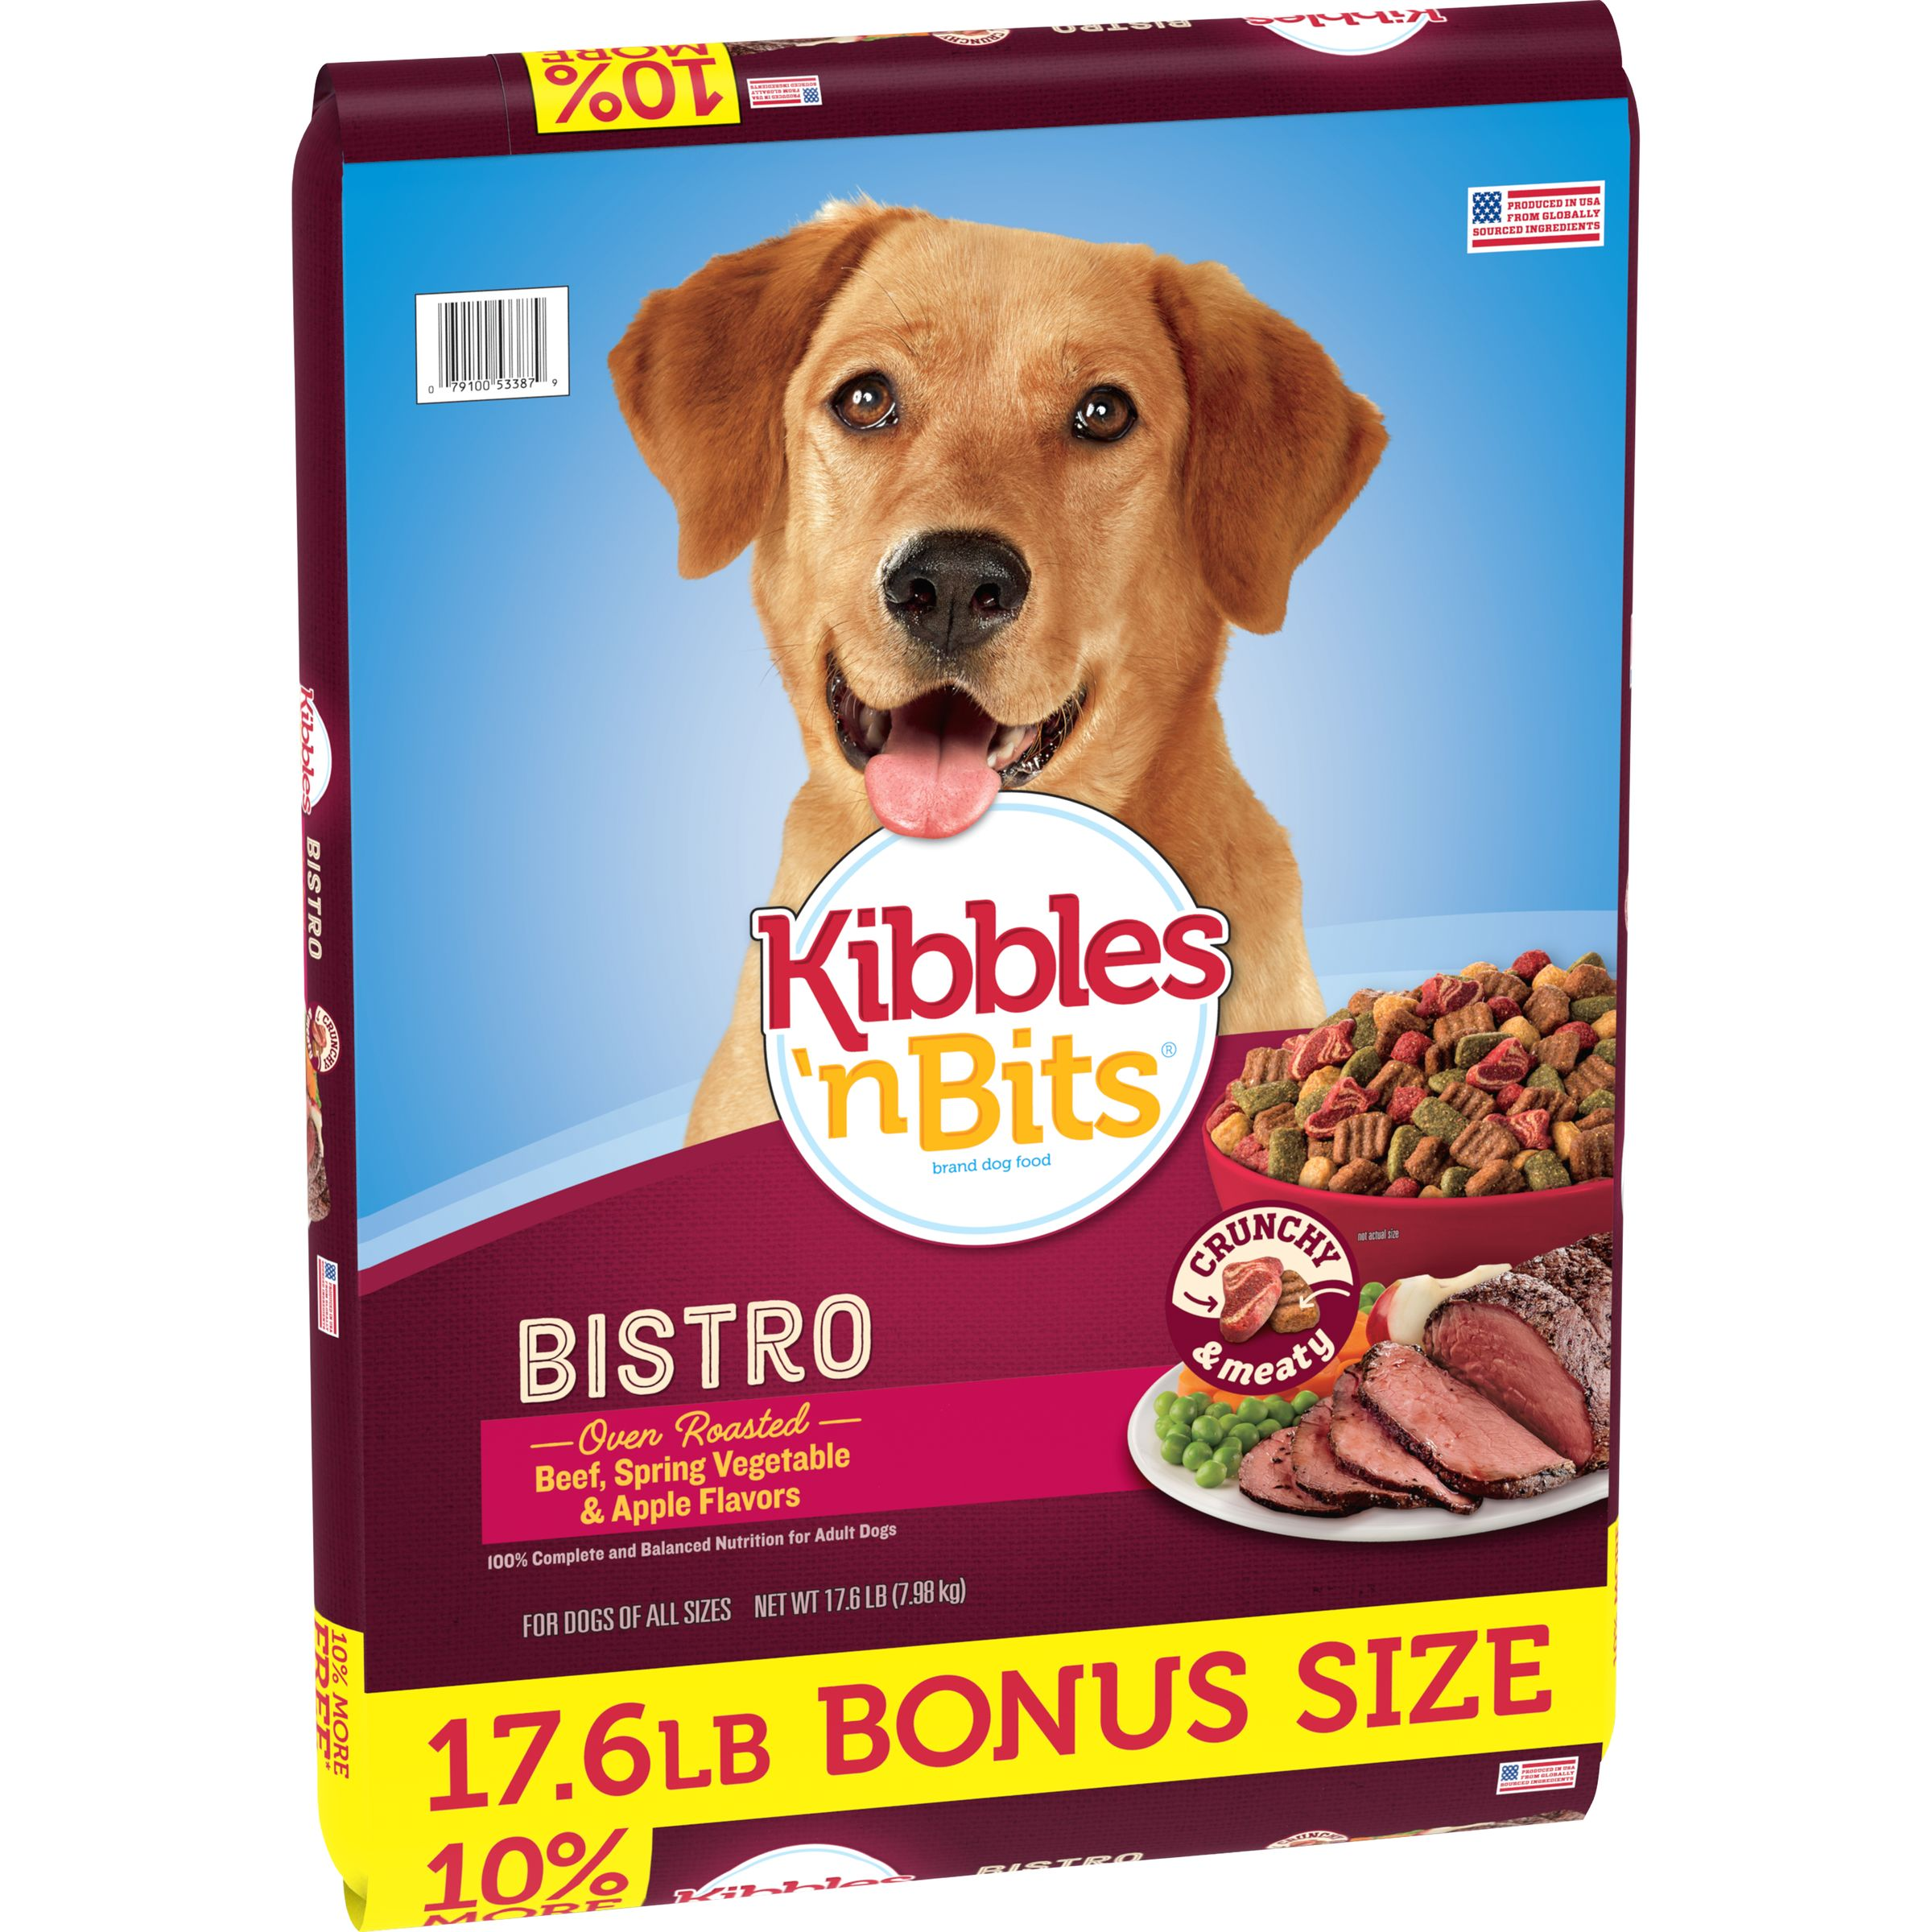 Kibbles 'n Bits Bistro Oven Roasted Beef Flavor Dog Food, 17.6-Pound